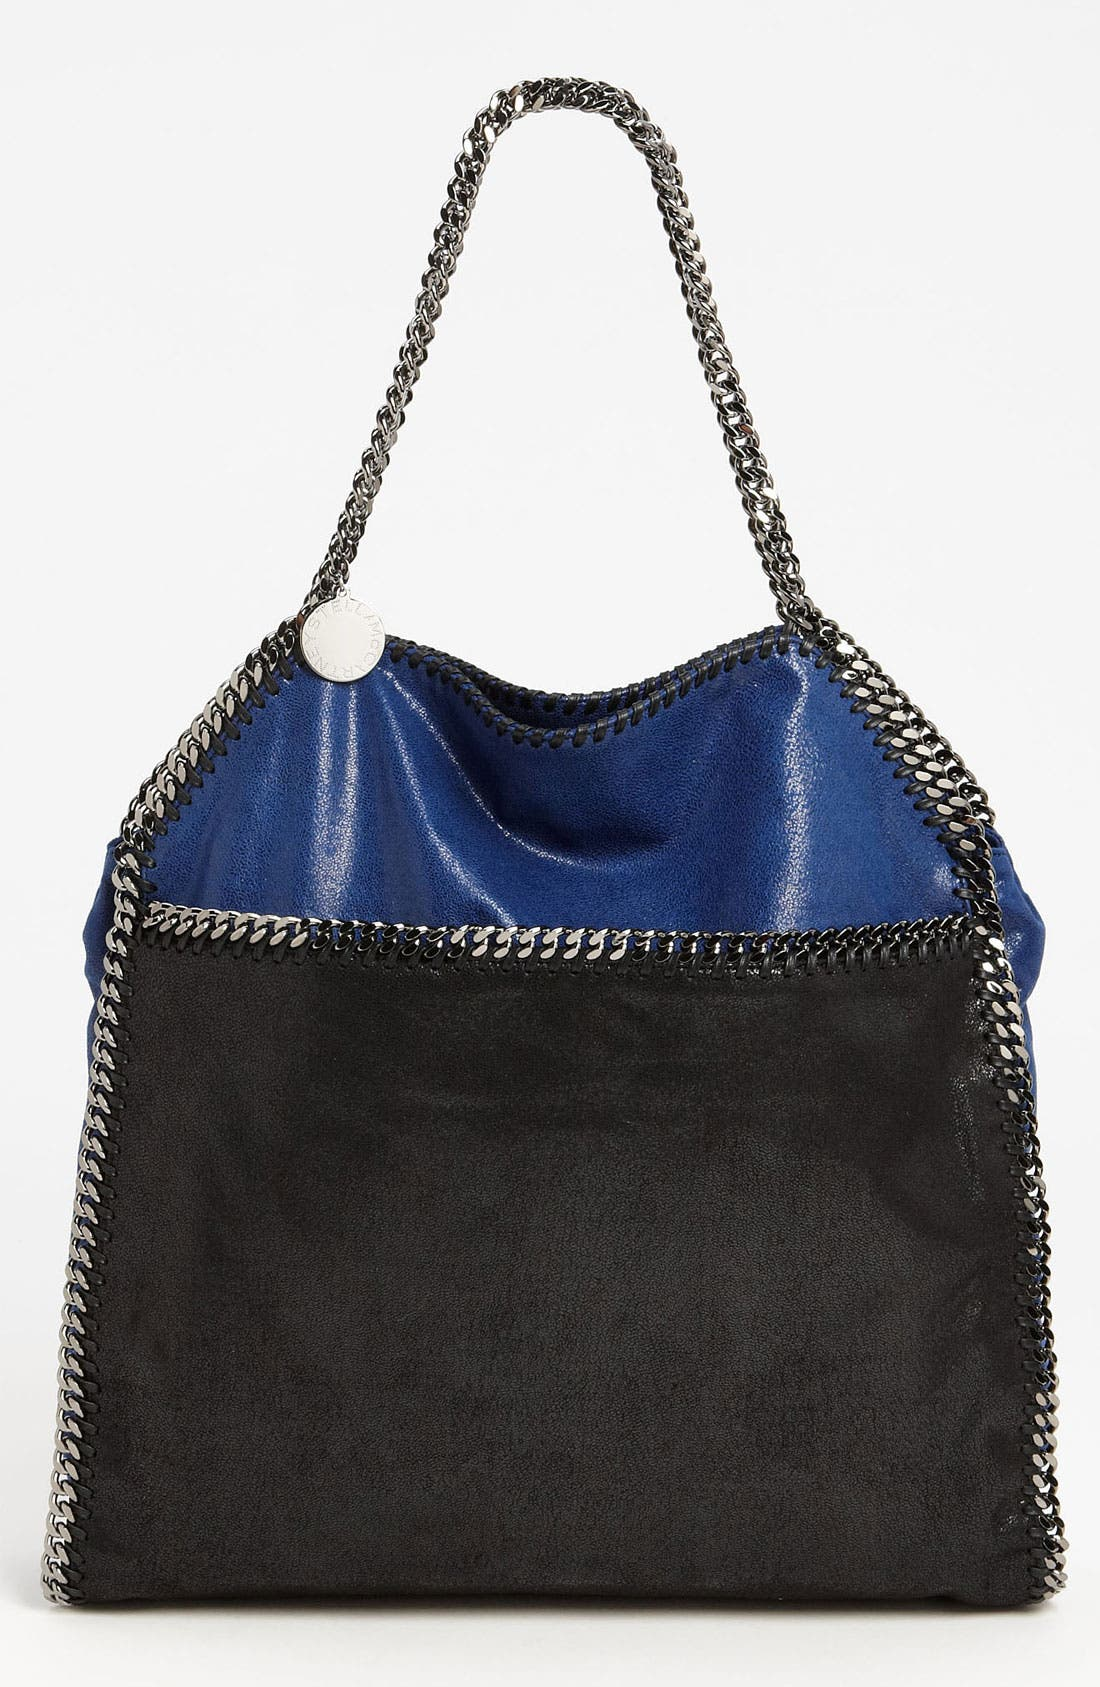 Main Image - Stella McCartney 'Falabella - Large' Shaggy Deer Tote